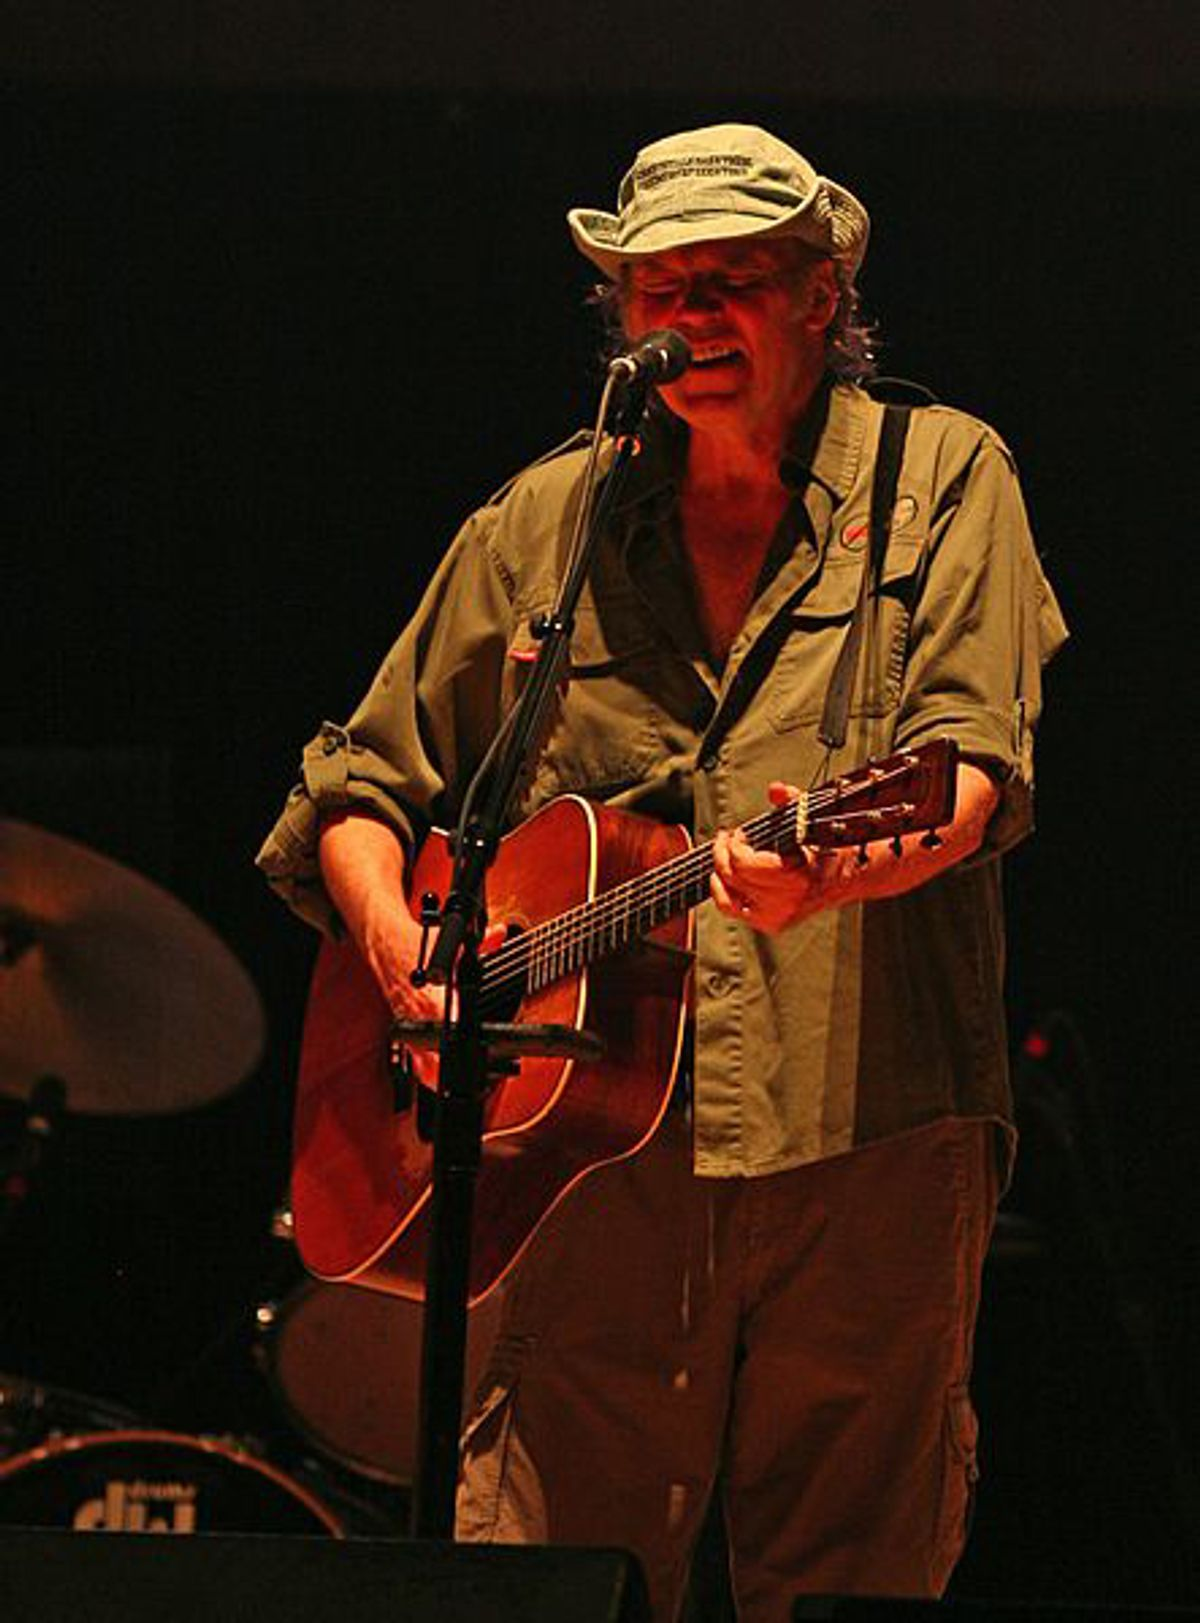 Neil Young and Crazy Horse Cancel European Tour After Accident